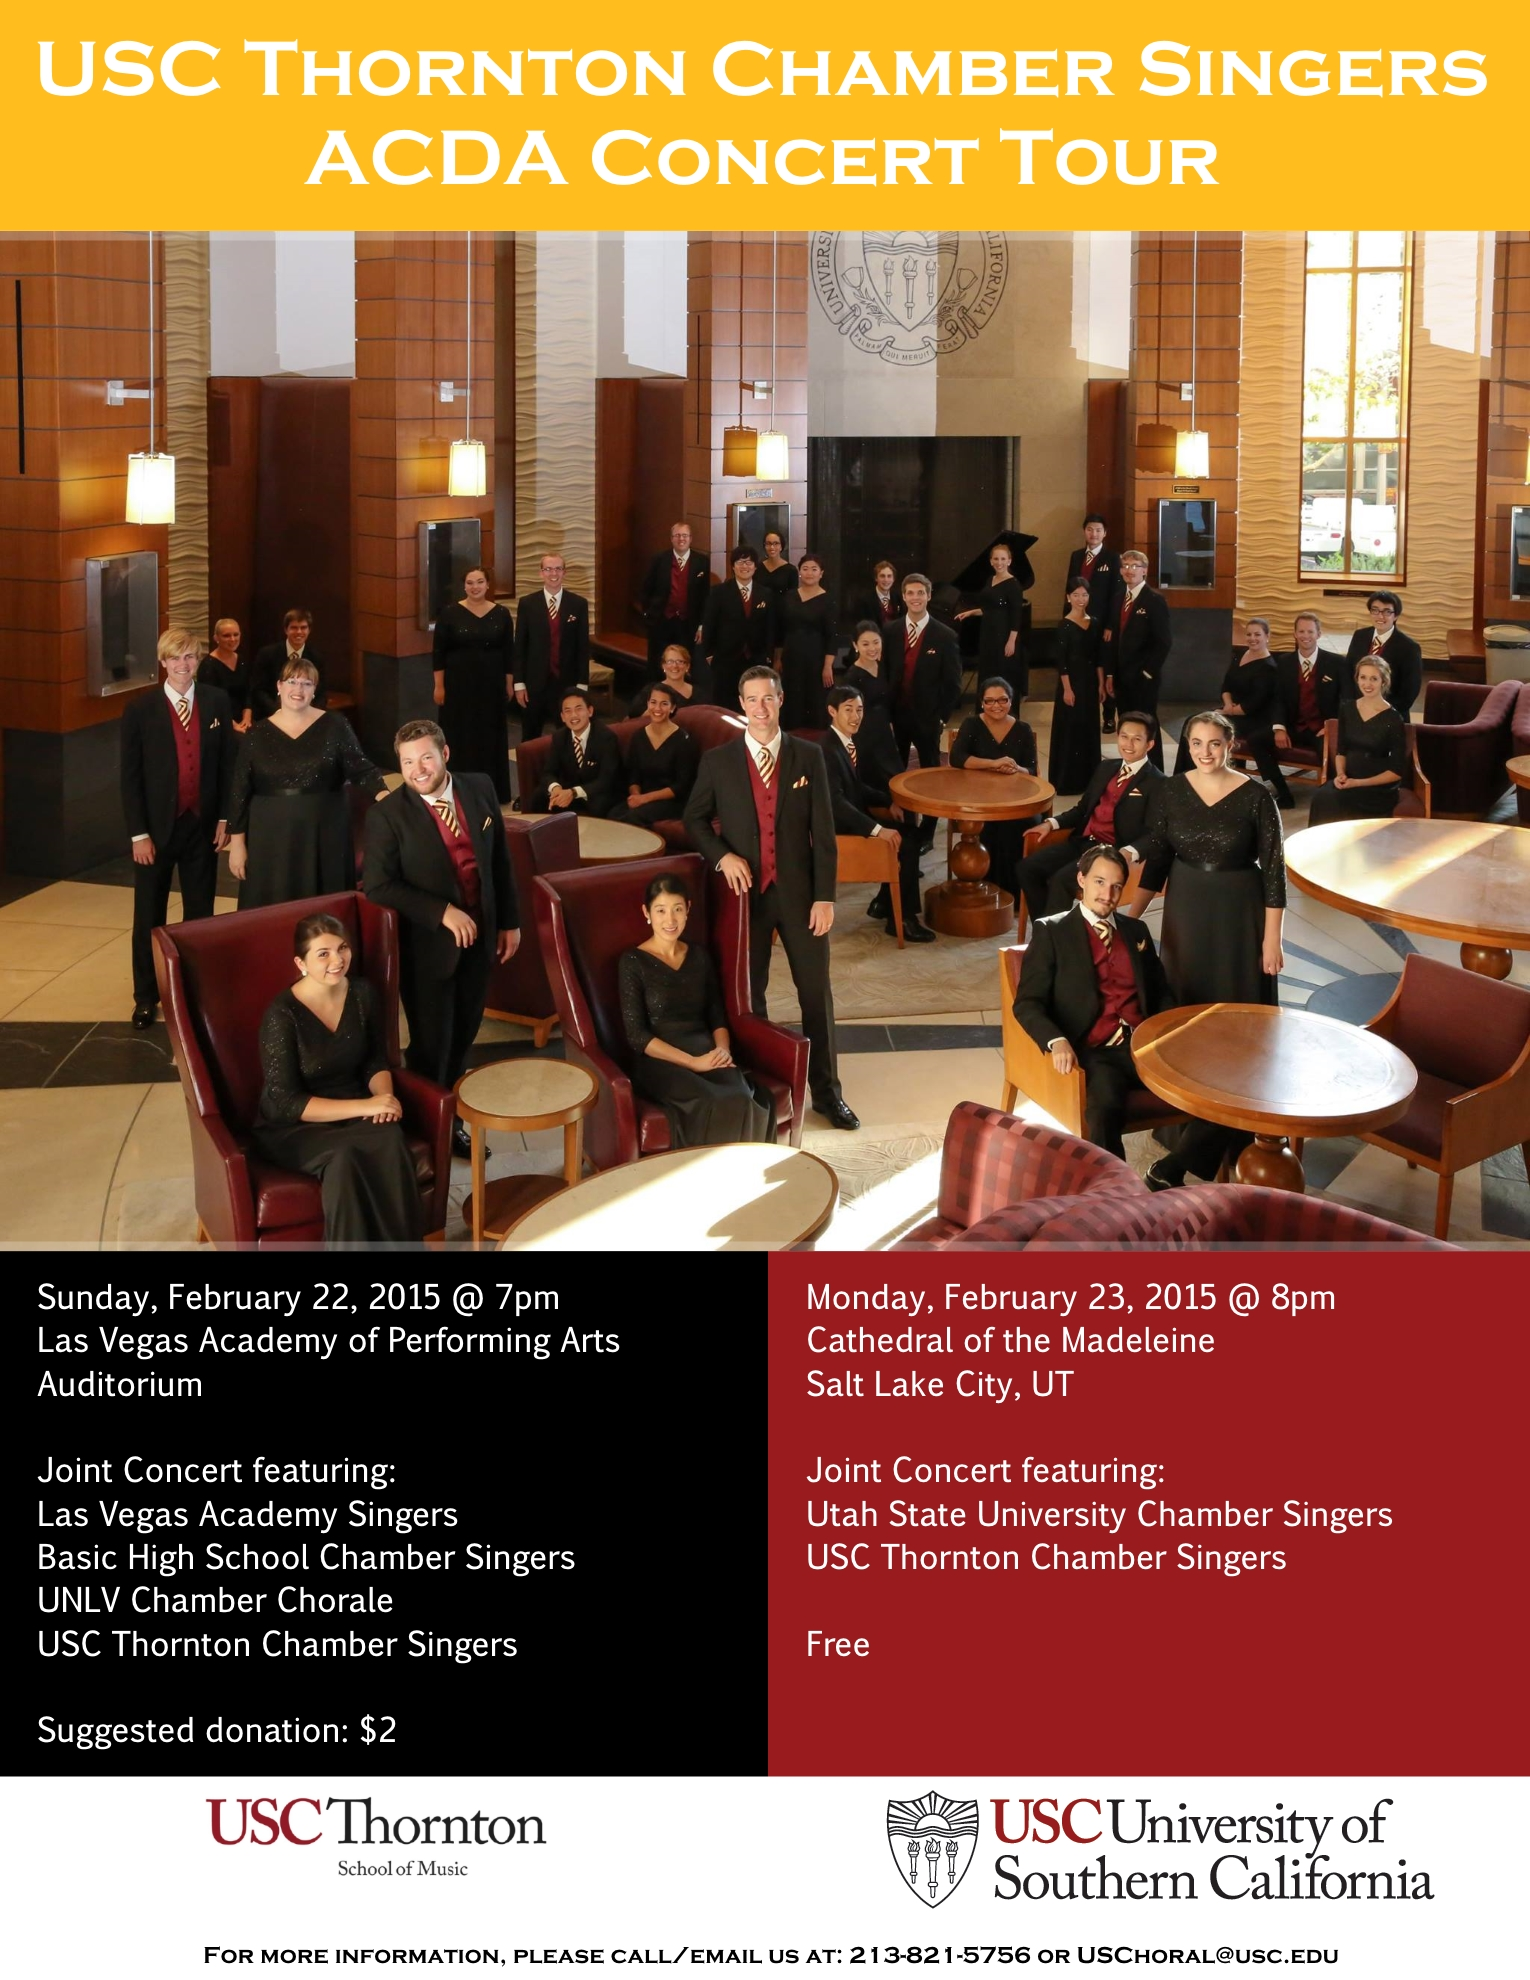 Joint Concert featuring USU Chamber Singers & USC Thornton Chamber Singers